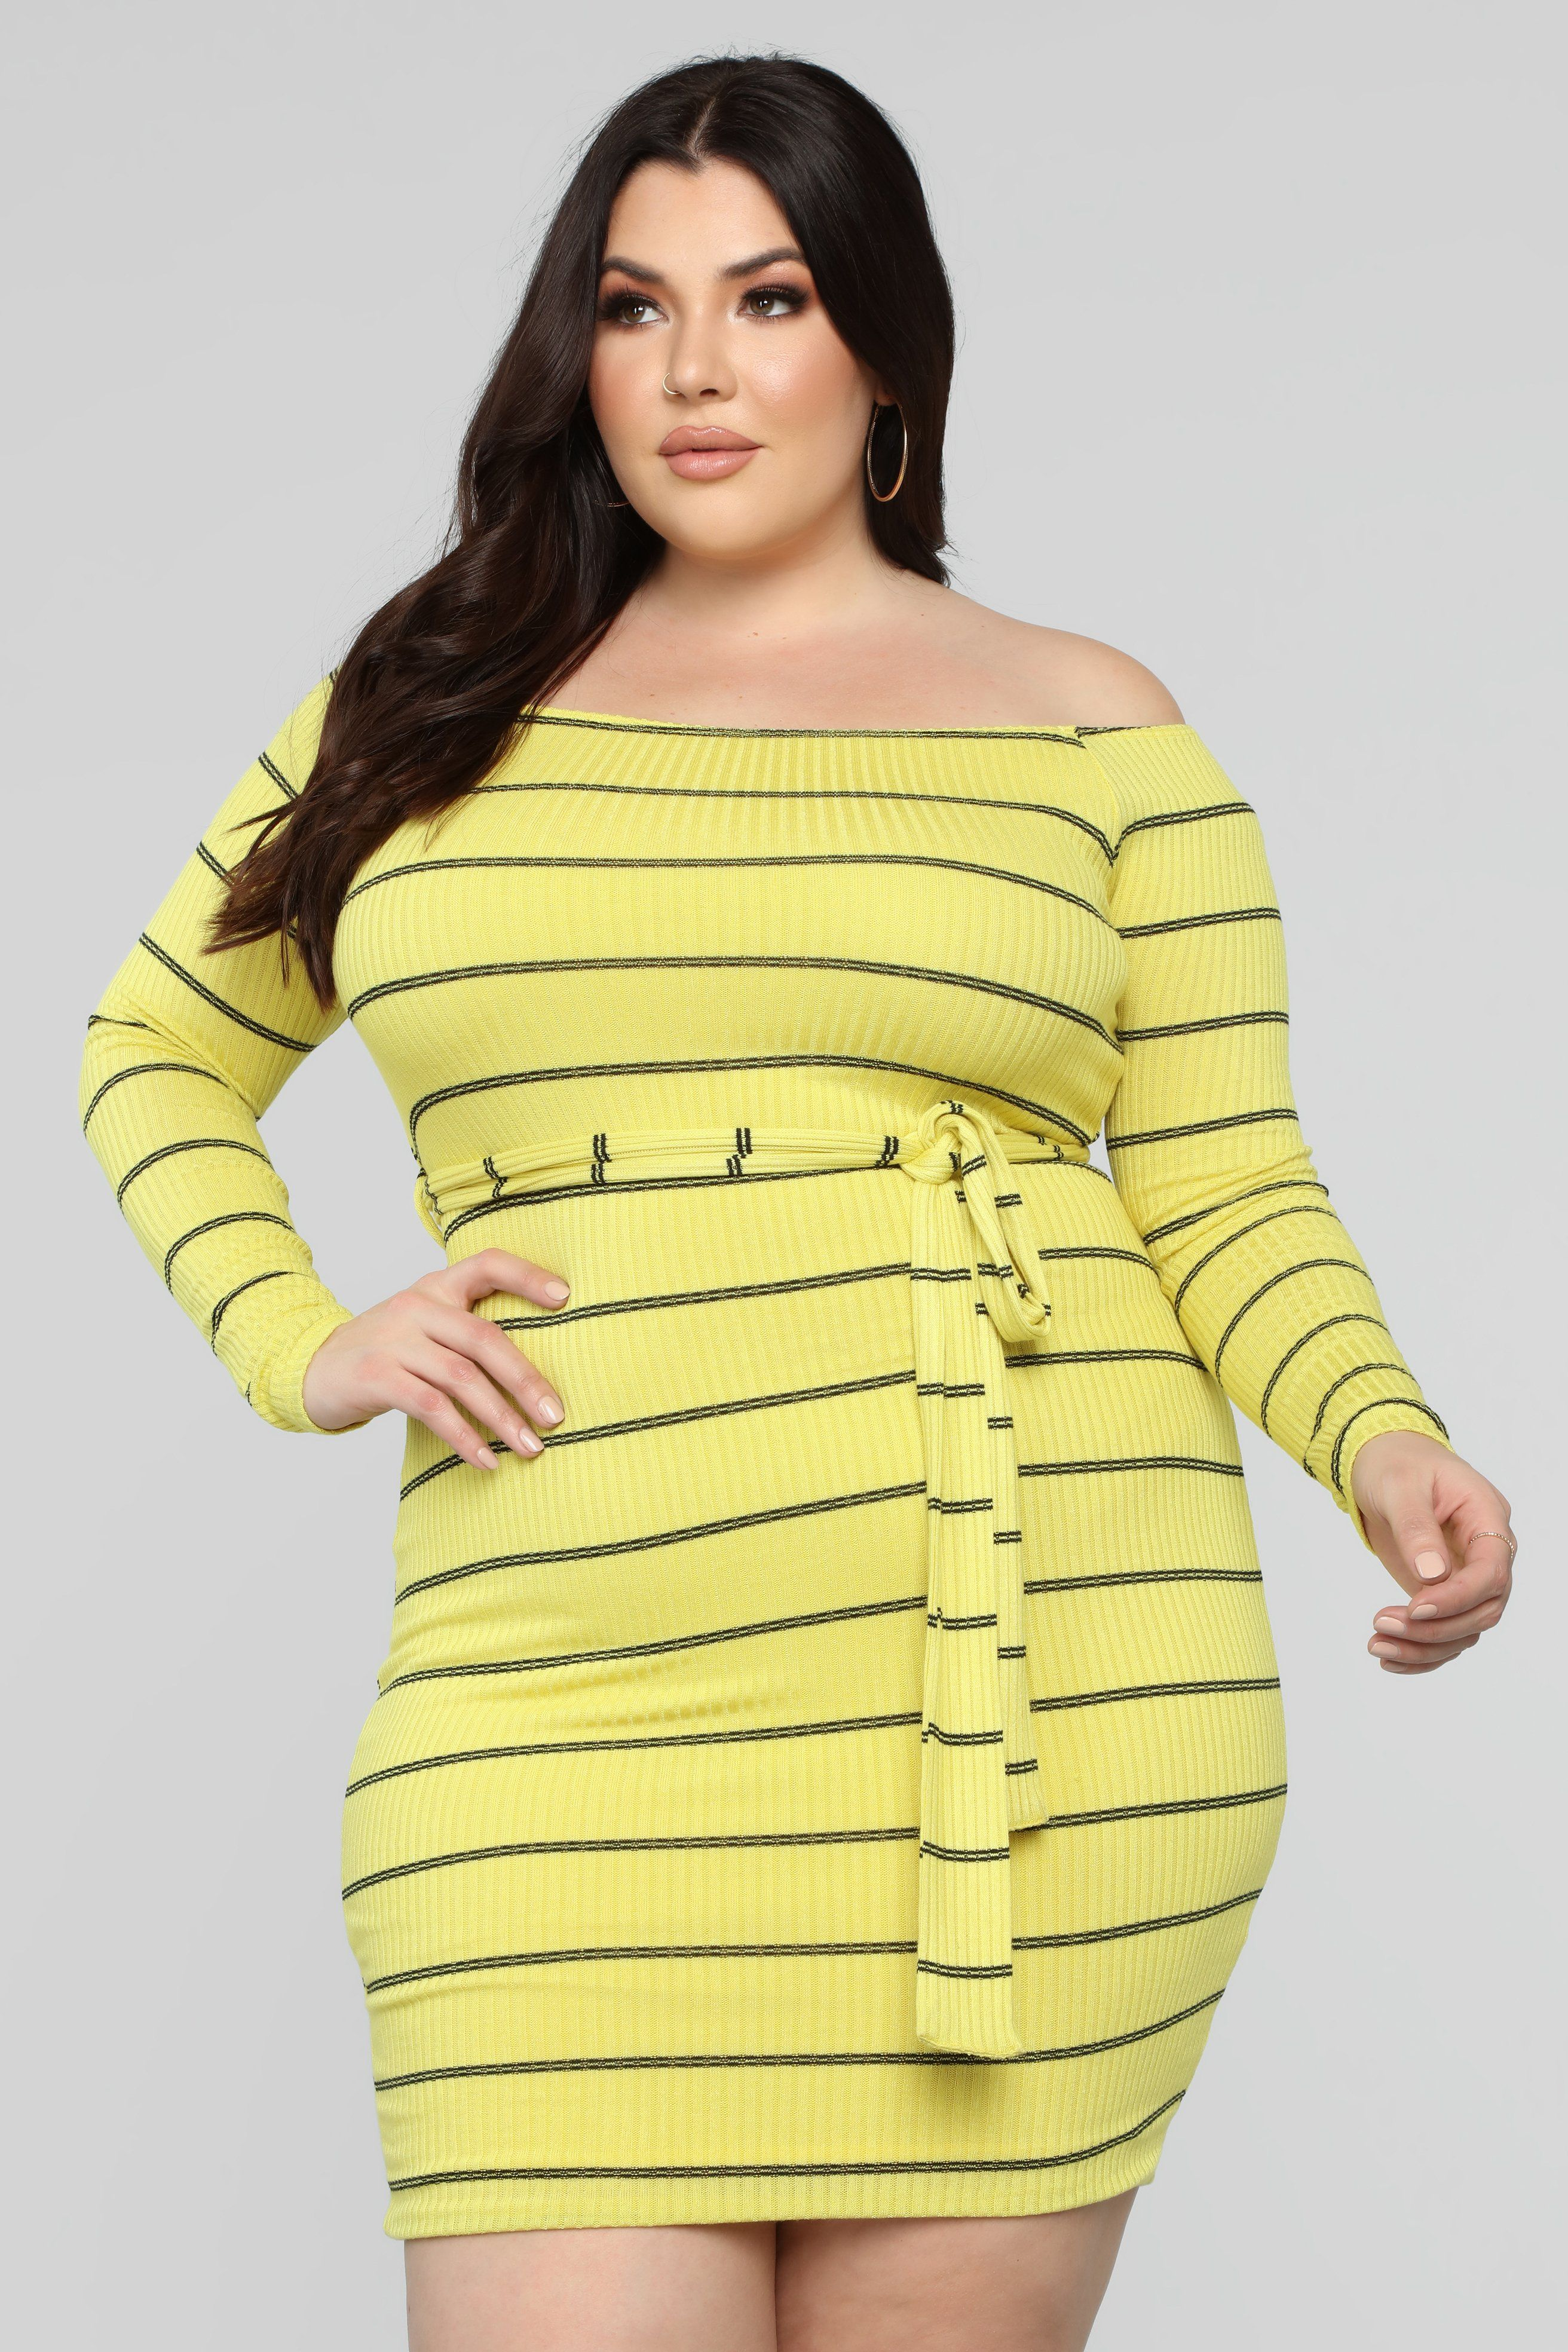 de63187c22 Have To Wait Off Shoulder Mini Dress - Yellow Lime in 2019 | Curvy ...